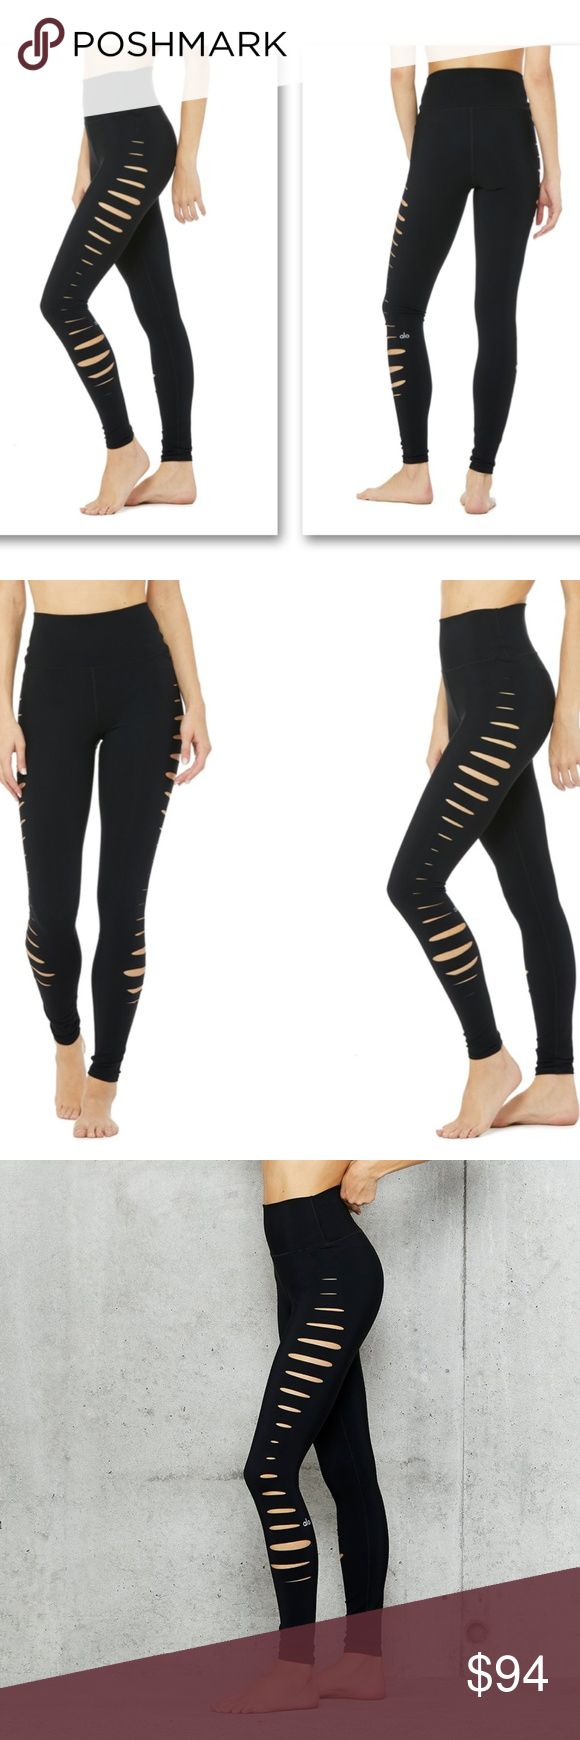 Slice Limited Edition High Waisted Leggings $139 Walk the line in the Slice Legging, cut from our sculpting performance fabric and designed with side slashes for added breathability. A high waist and 4-way stretch make for complete comfort, during and beyond your practice.  - Engineered to lift, sculpt, contour and smooth - Wear-tested by our in-house team for the perfect fit - 4-way-stretch fabric for a move-with-you feel - Moisture-wicking antimicrobial technology - Breathable laser cut…